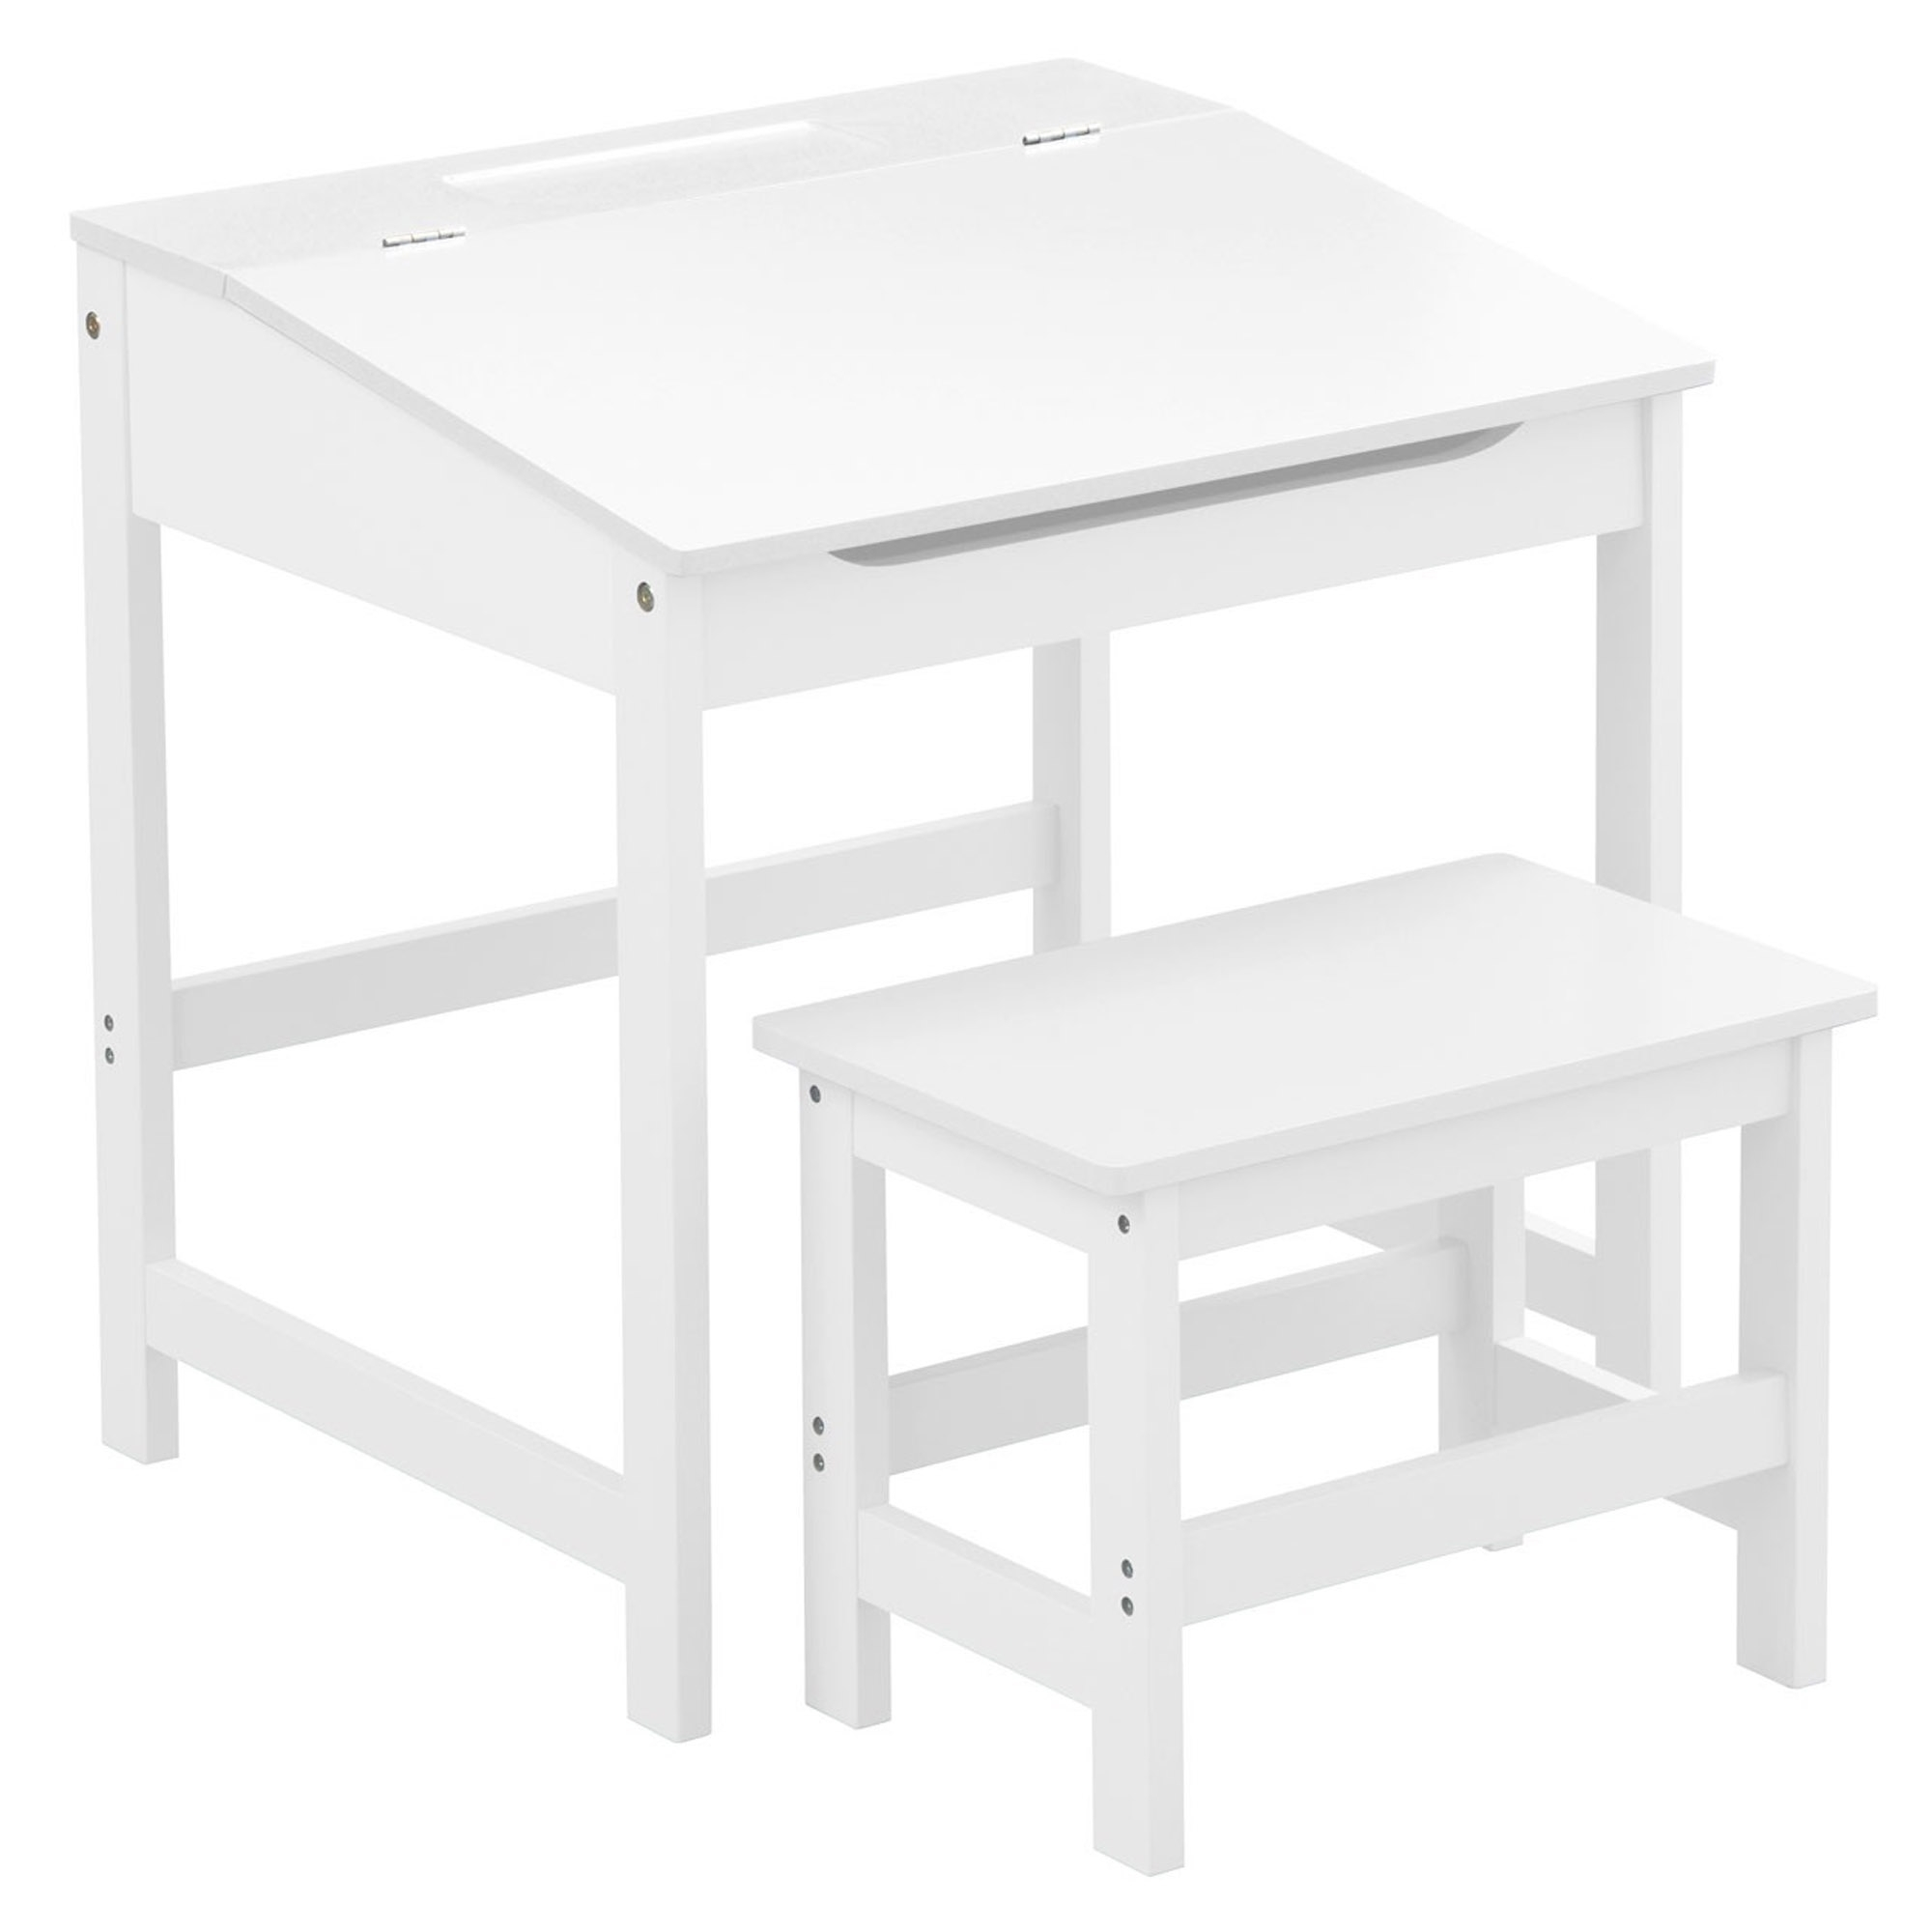 White kids desk and stool modern contemporary kids furniture